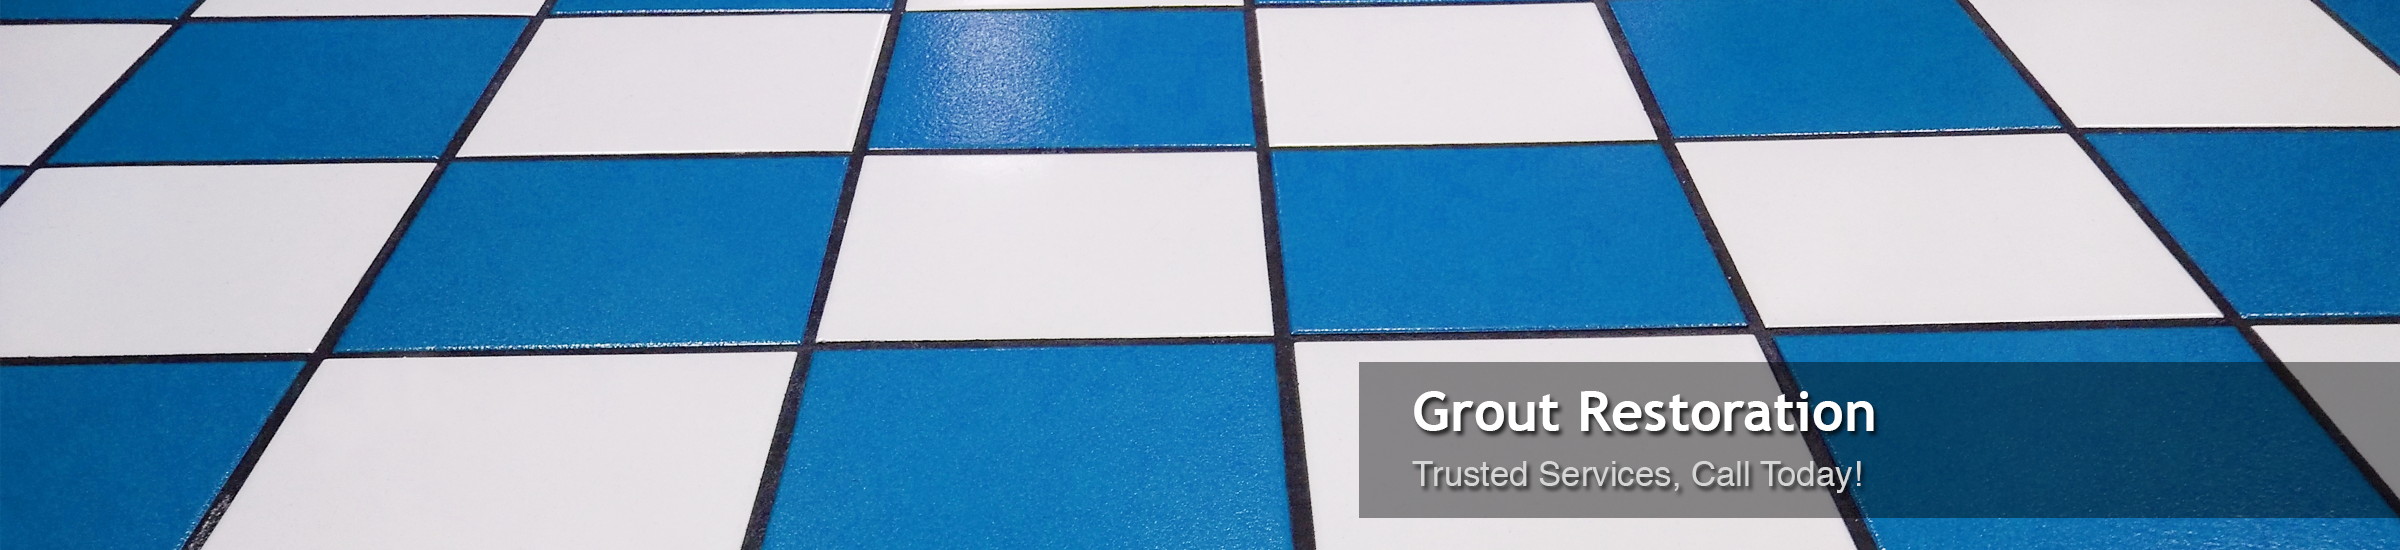 grout-restore